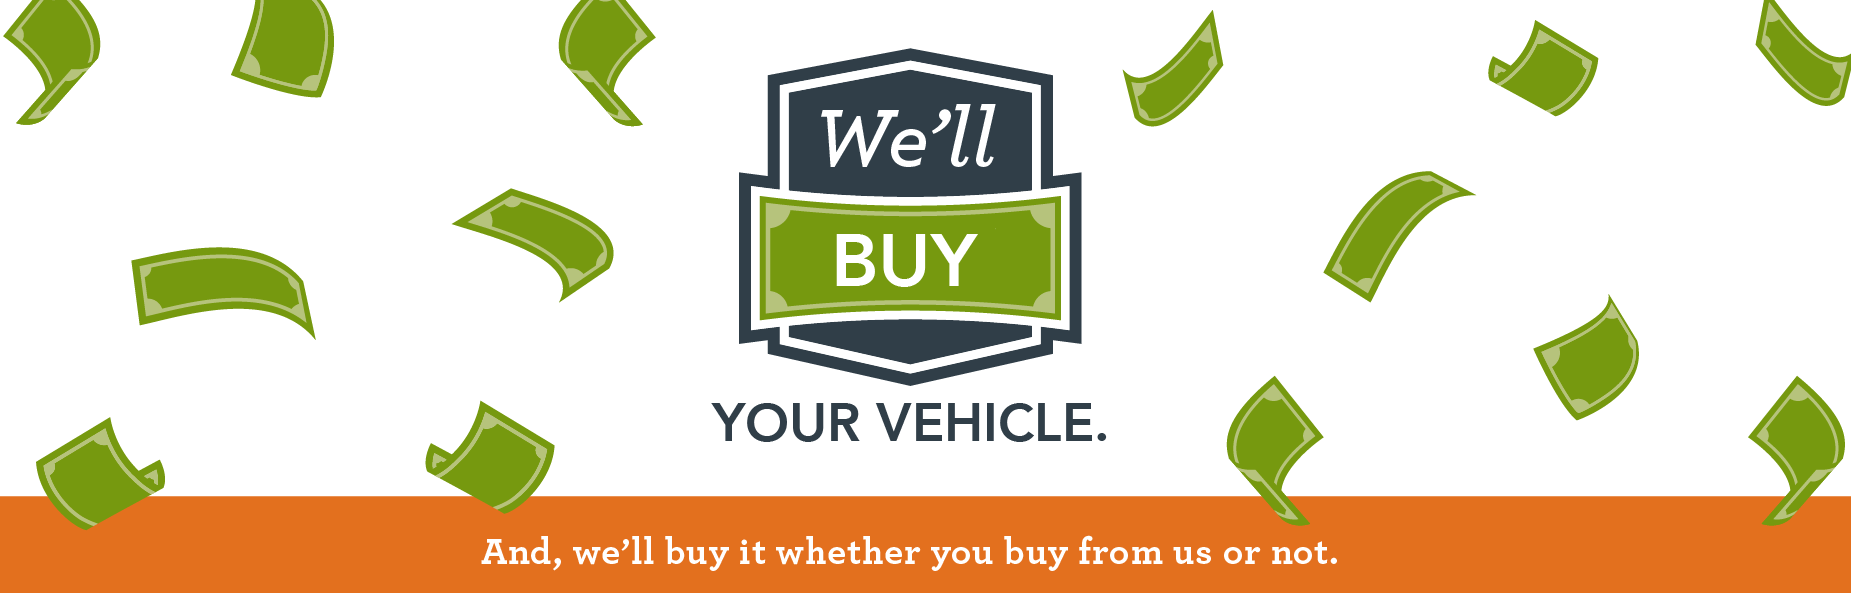 we'll buy your vehicle Banner